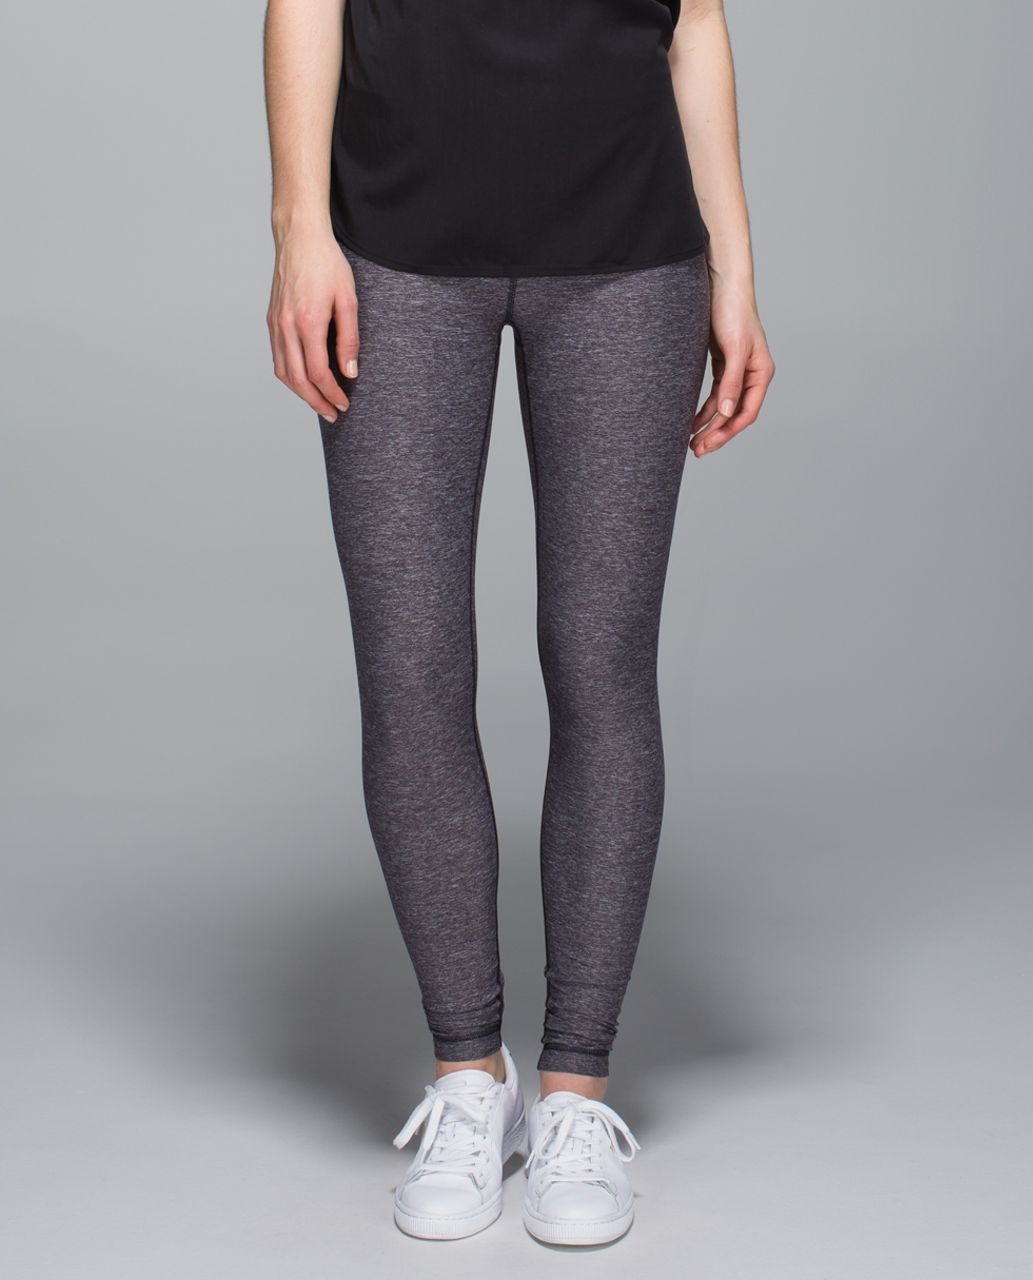 Lululemon Wunder Under Pant (Roll Down) - Heathered Naval Blue